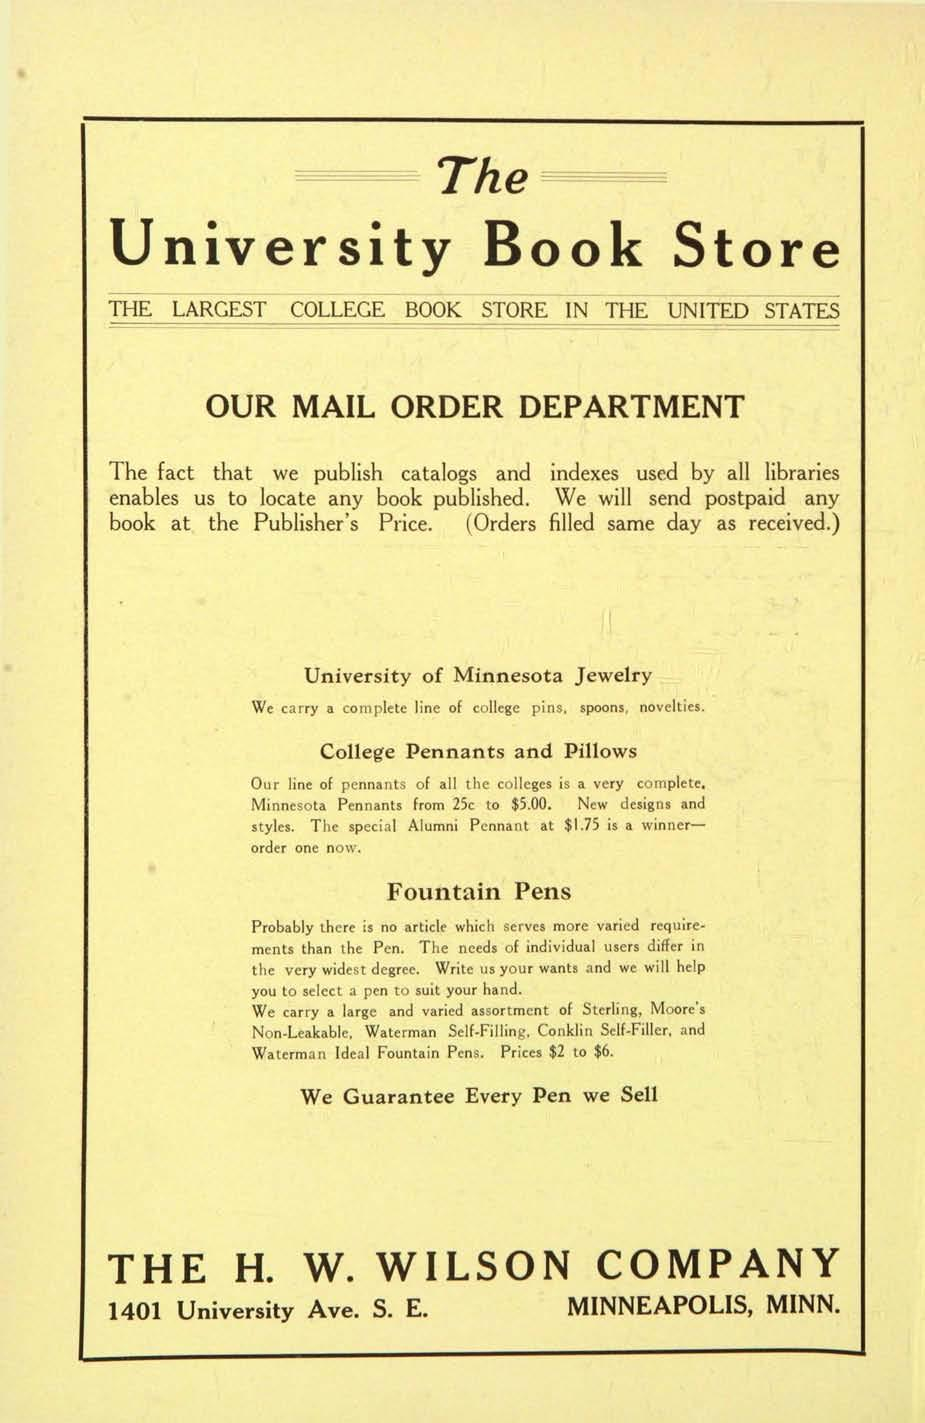 ~~- The ===--===-===== University Book Store THE LARGEST COLLEGE BOOK STORE IN THE UNITED STATES OUR MAIL ORDER DEPARTMENT The fact that we publish catalogs and enables us to locate any book